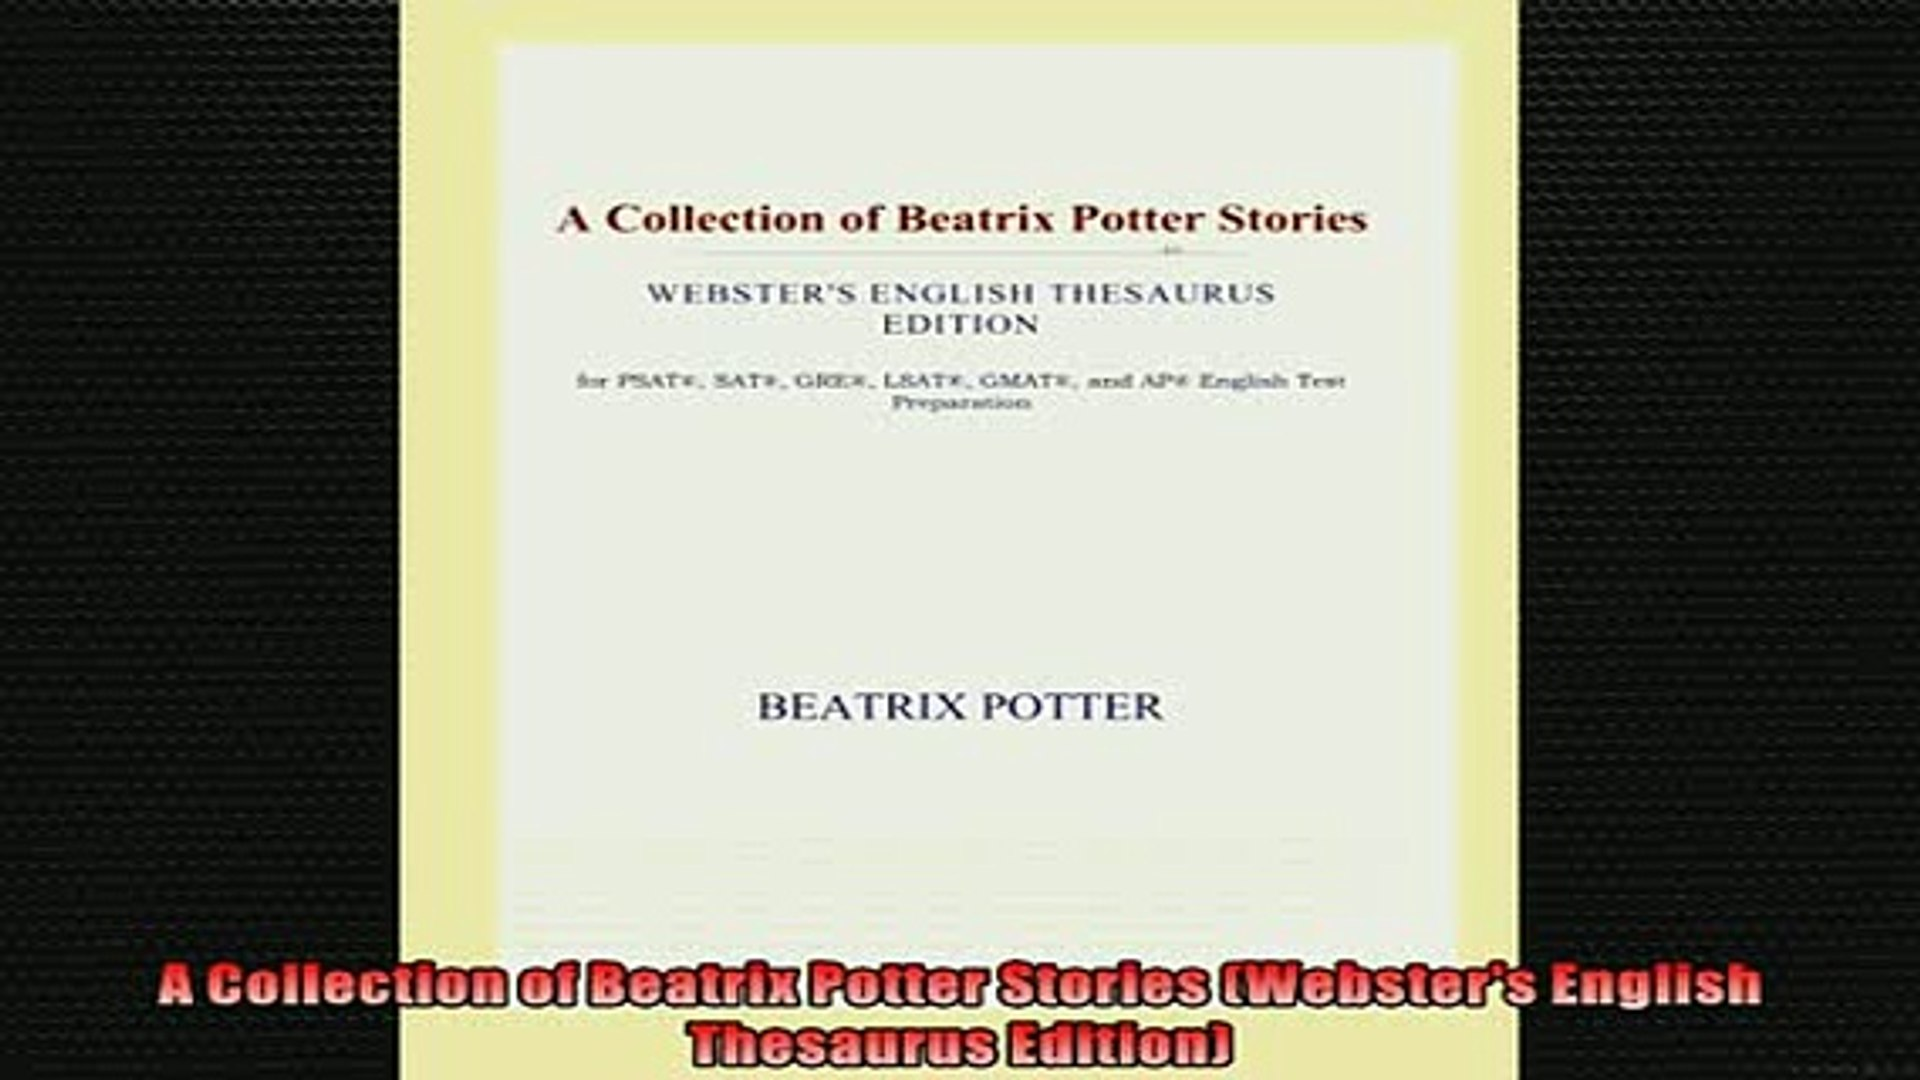 FREE DOWNLOAD  A Collection of Beatrix Potter Stories Websters English Thesaurus Edition  FREE BOOOK